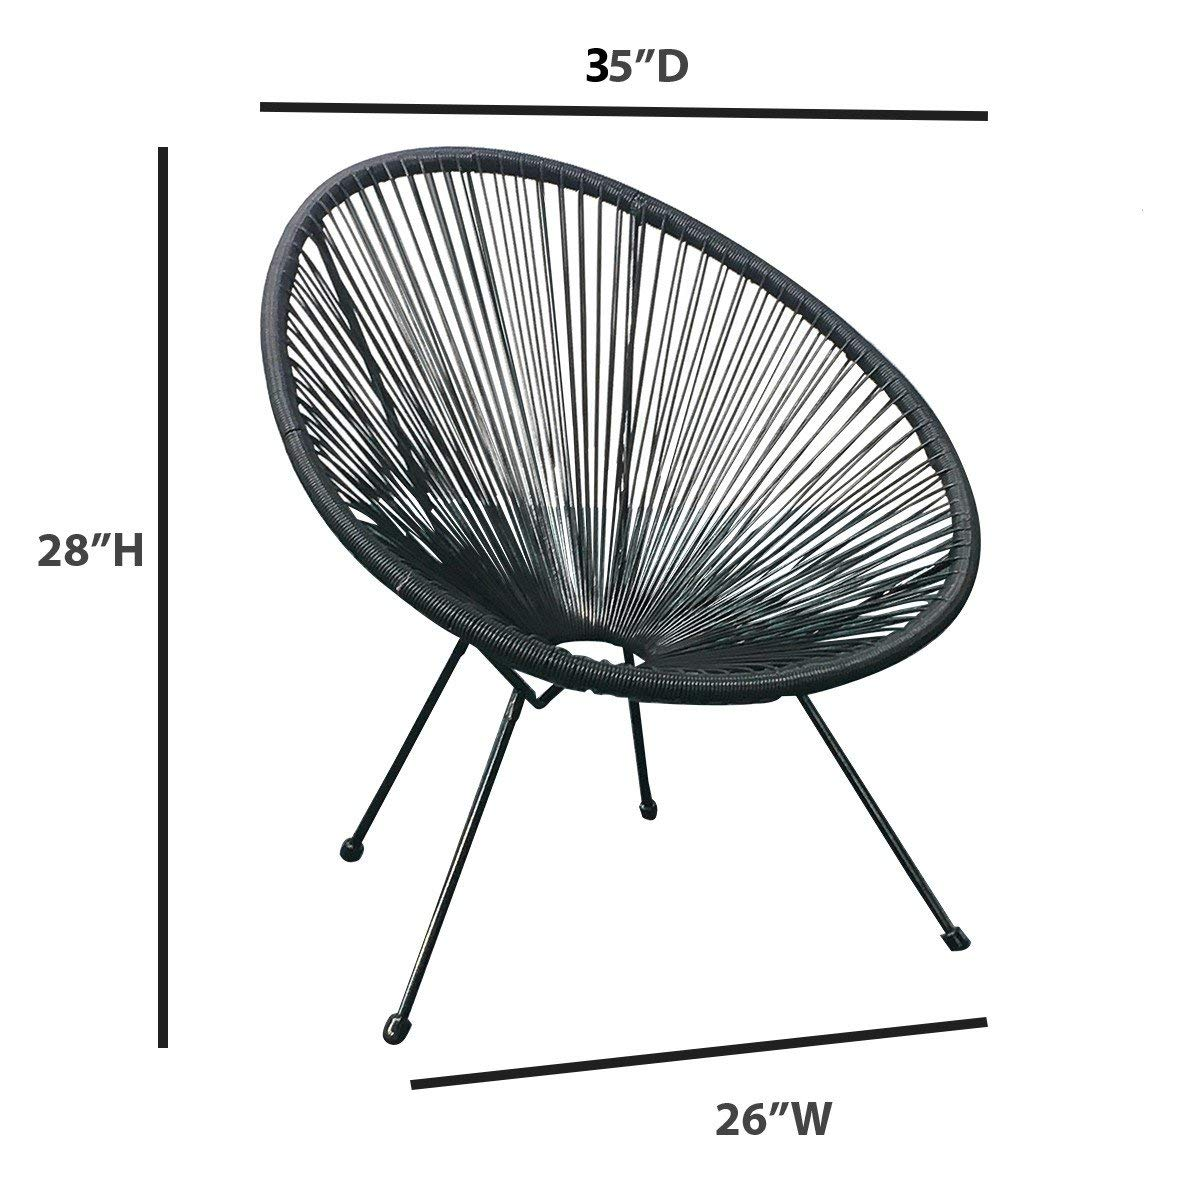 acapulco patio chair all weather weave lounge chair patio sun oval chair available for indoor outdoor 1 piece black